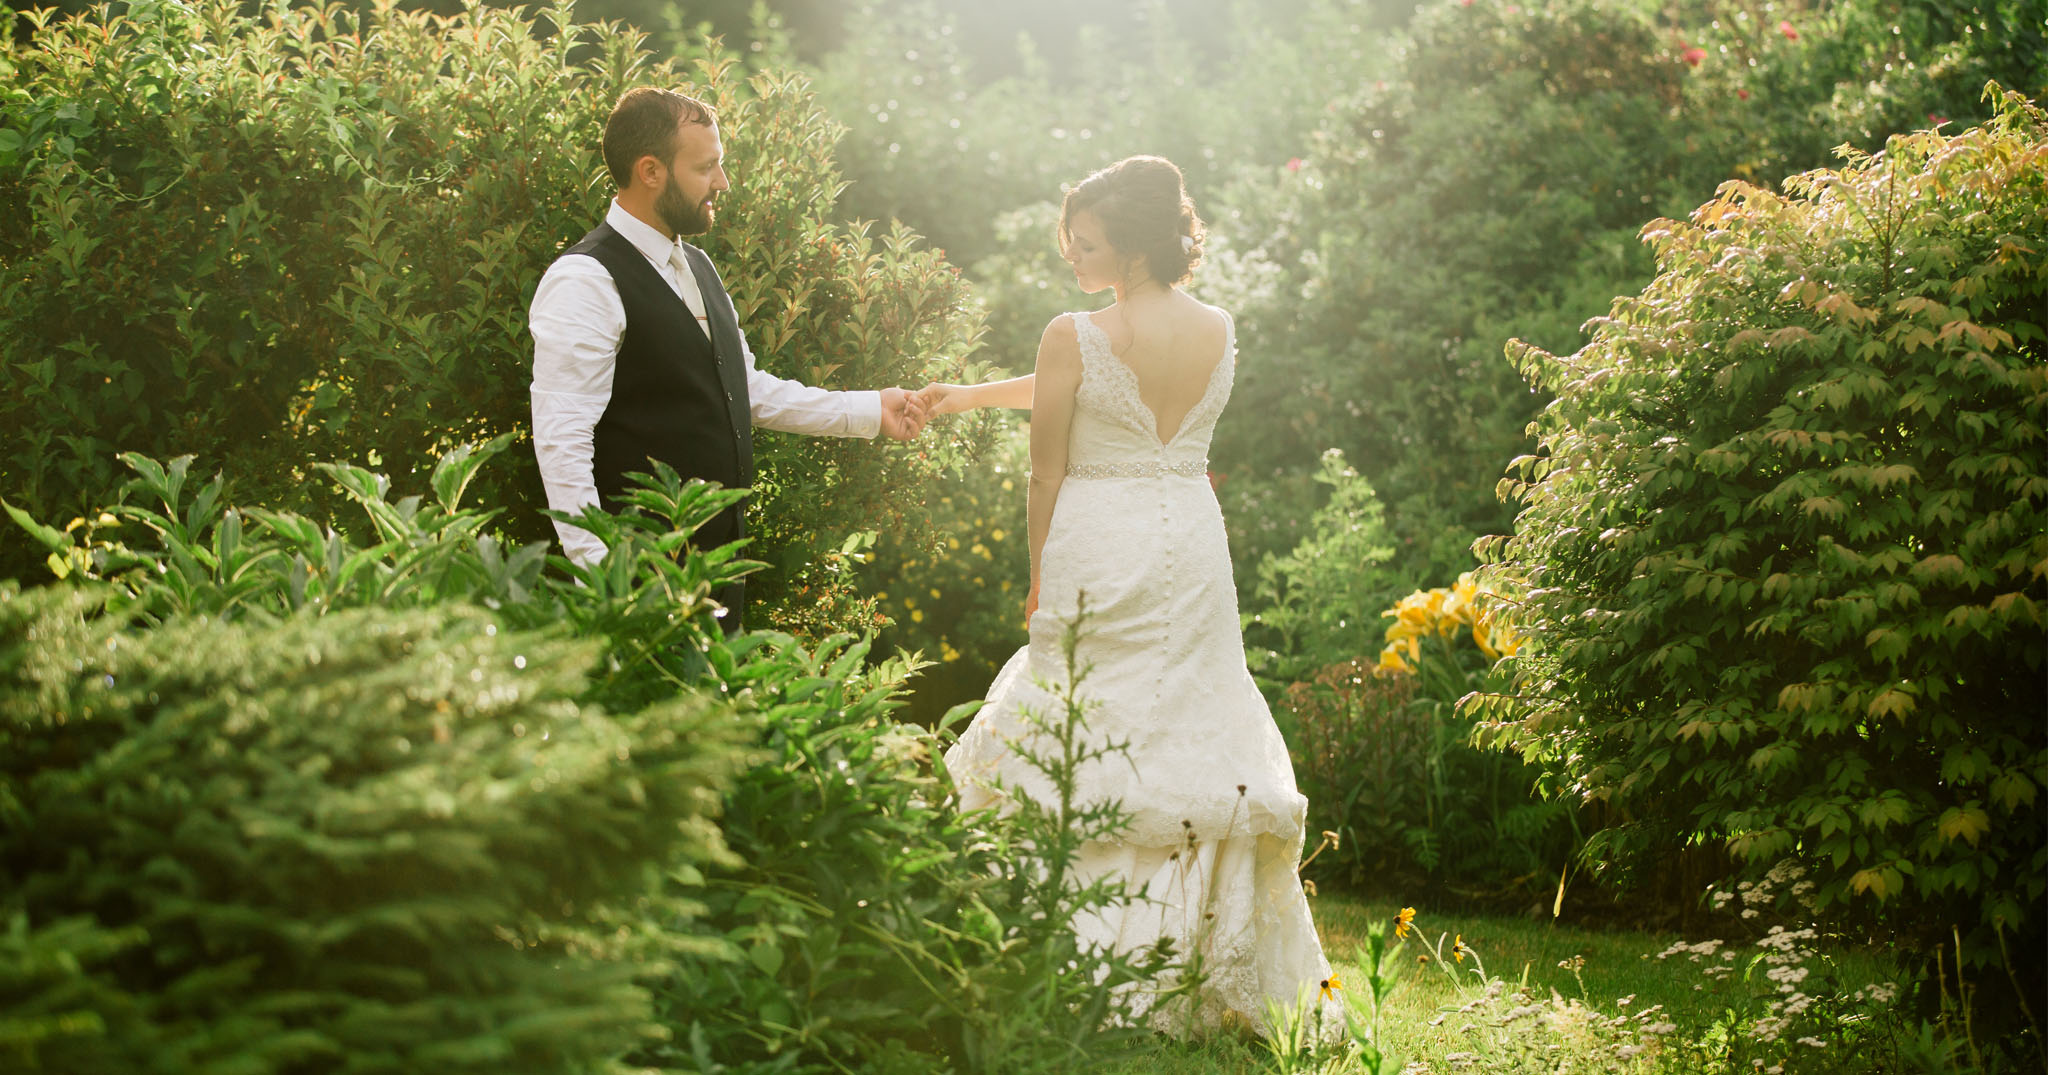 Rustic Elegance Set the Tone for This Couple's Real Wedding - BridalPulse